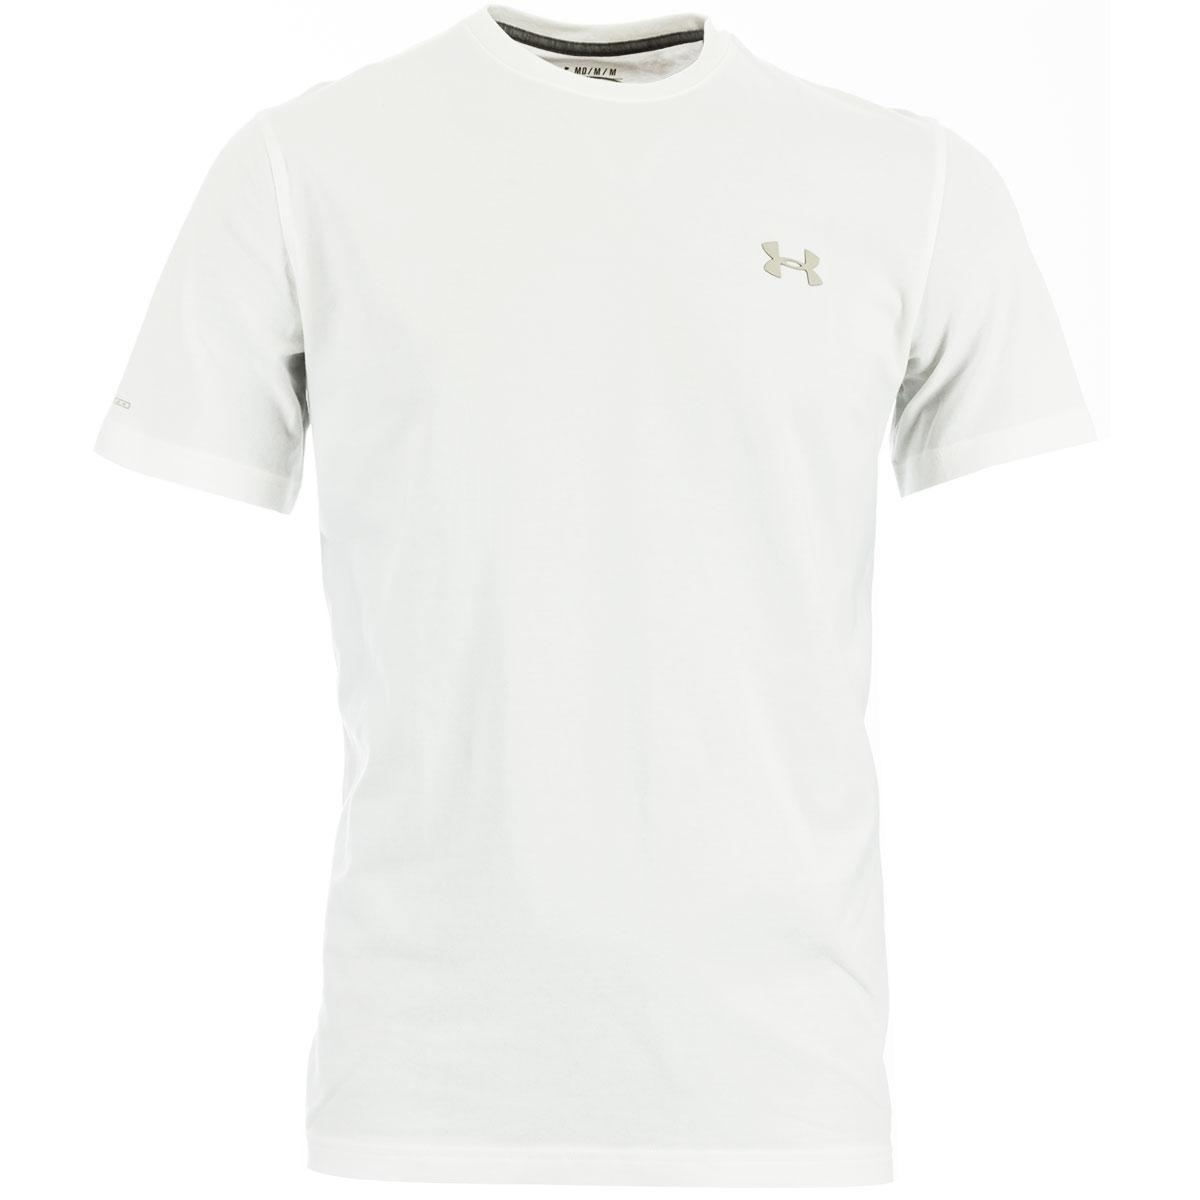 442ad4833 White Under Armour Heatgear Charged Cotton Tee Shirt (Short Sleeve ...